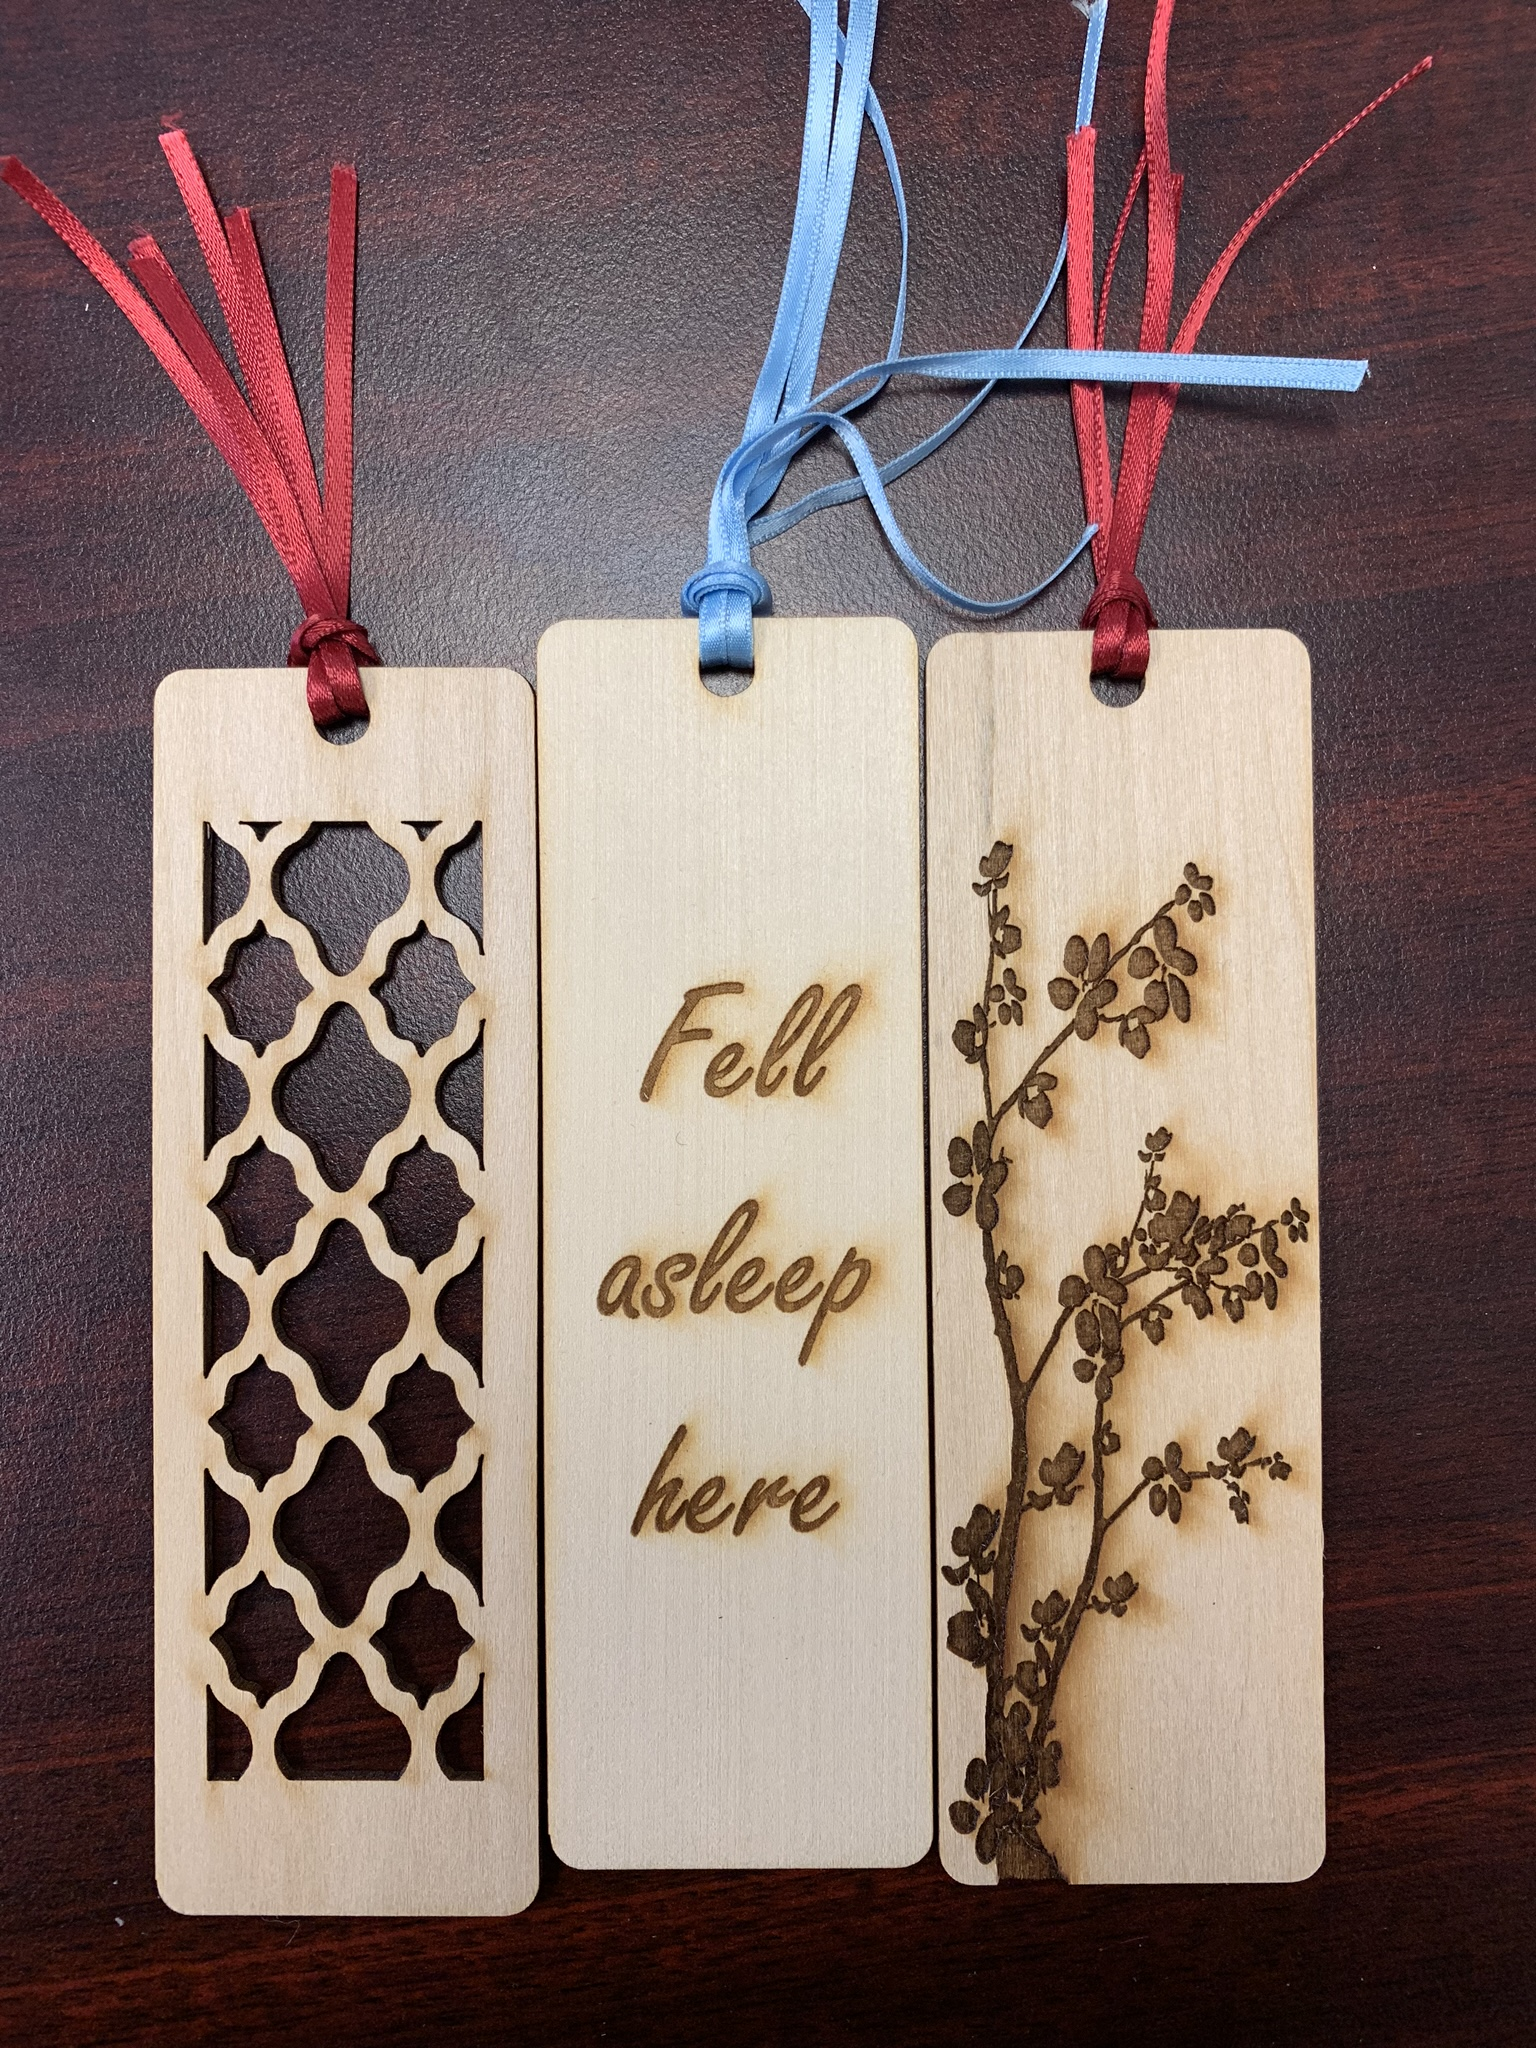 Photo of several laser engraved bookmarks